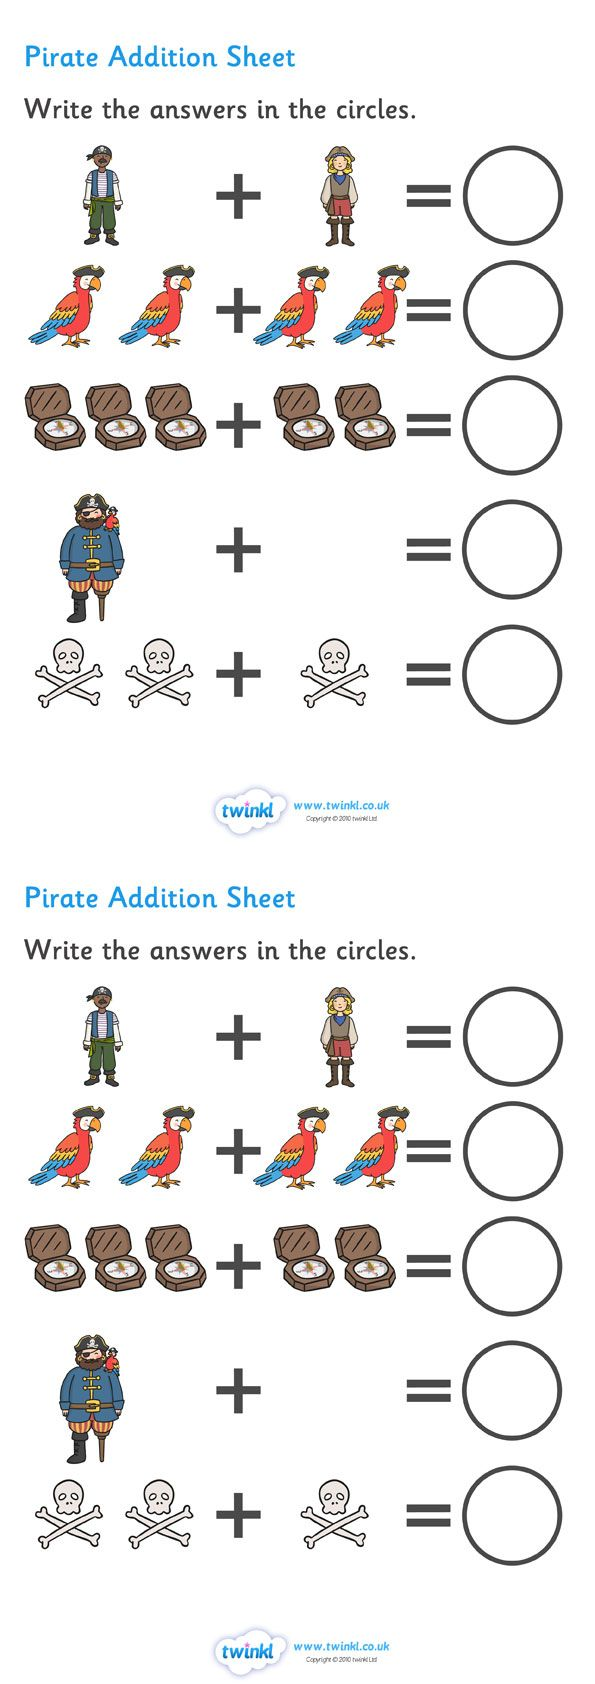 Twinkl Resources >> Pirate Addition Sheet  >> Classroom printables for Pre-School, Kindergarten, Elementary School and beyond! Worksheets, Math, Pirates